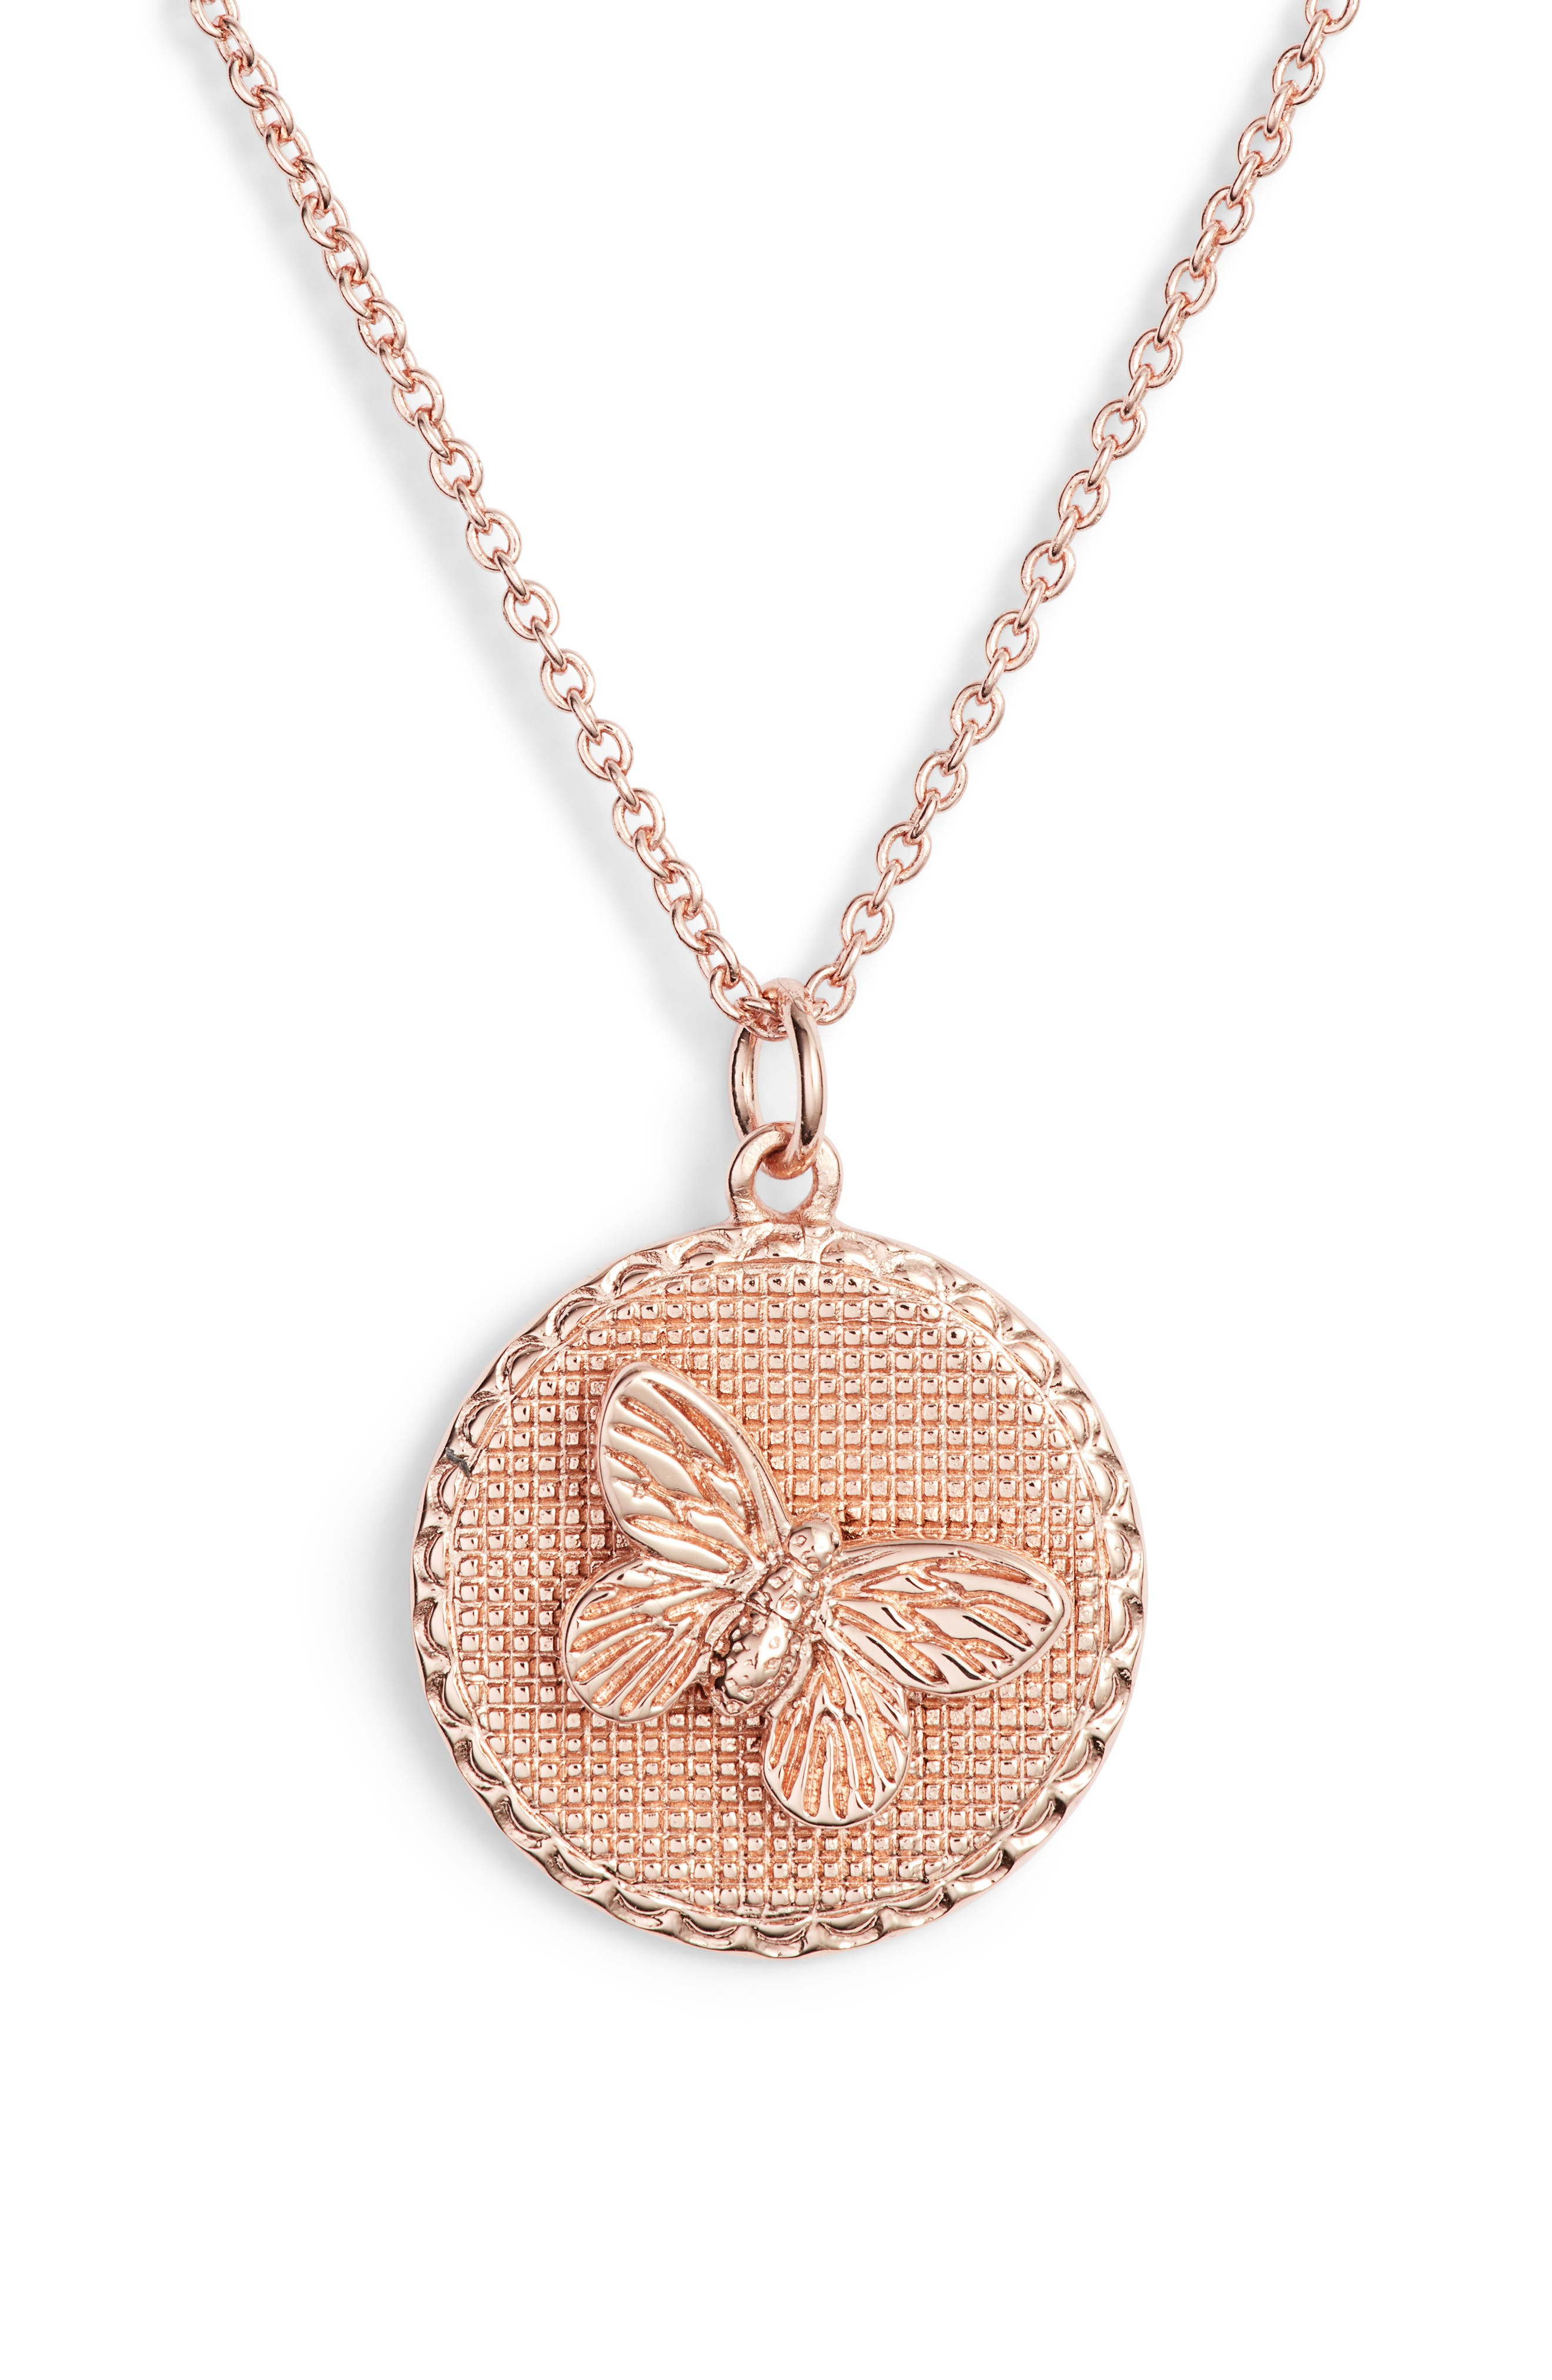 OLIVIA BURTON 3-D Butterfly Pendant Chain Necklace, 16 in Rose Gold